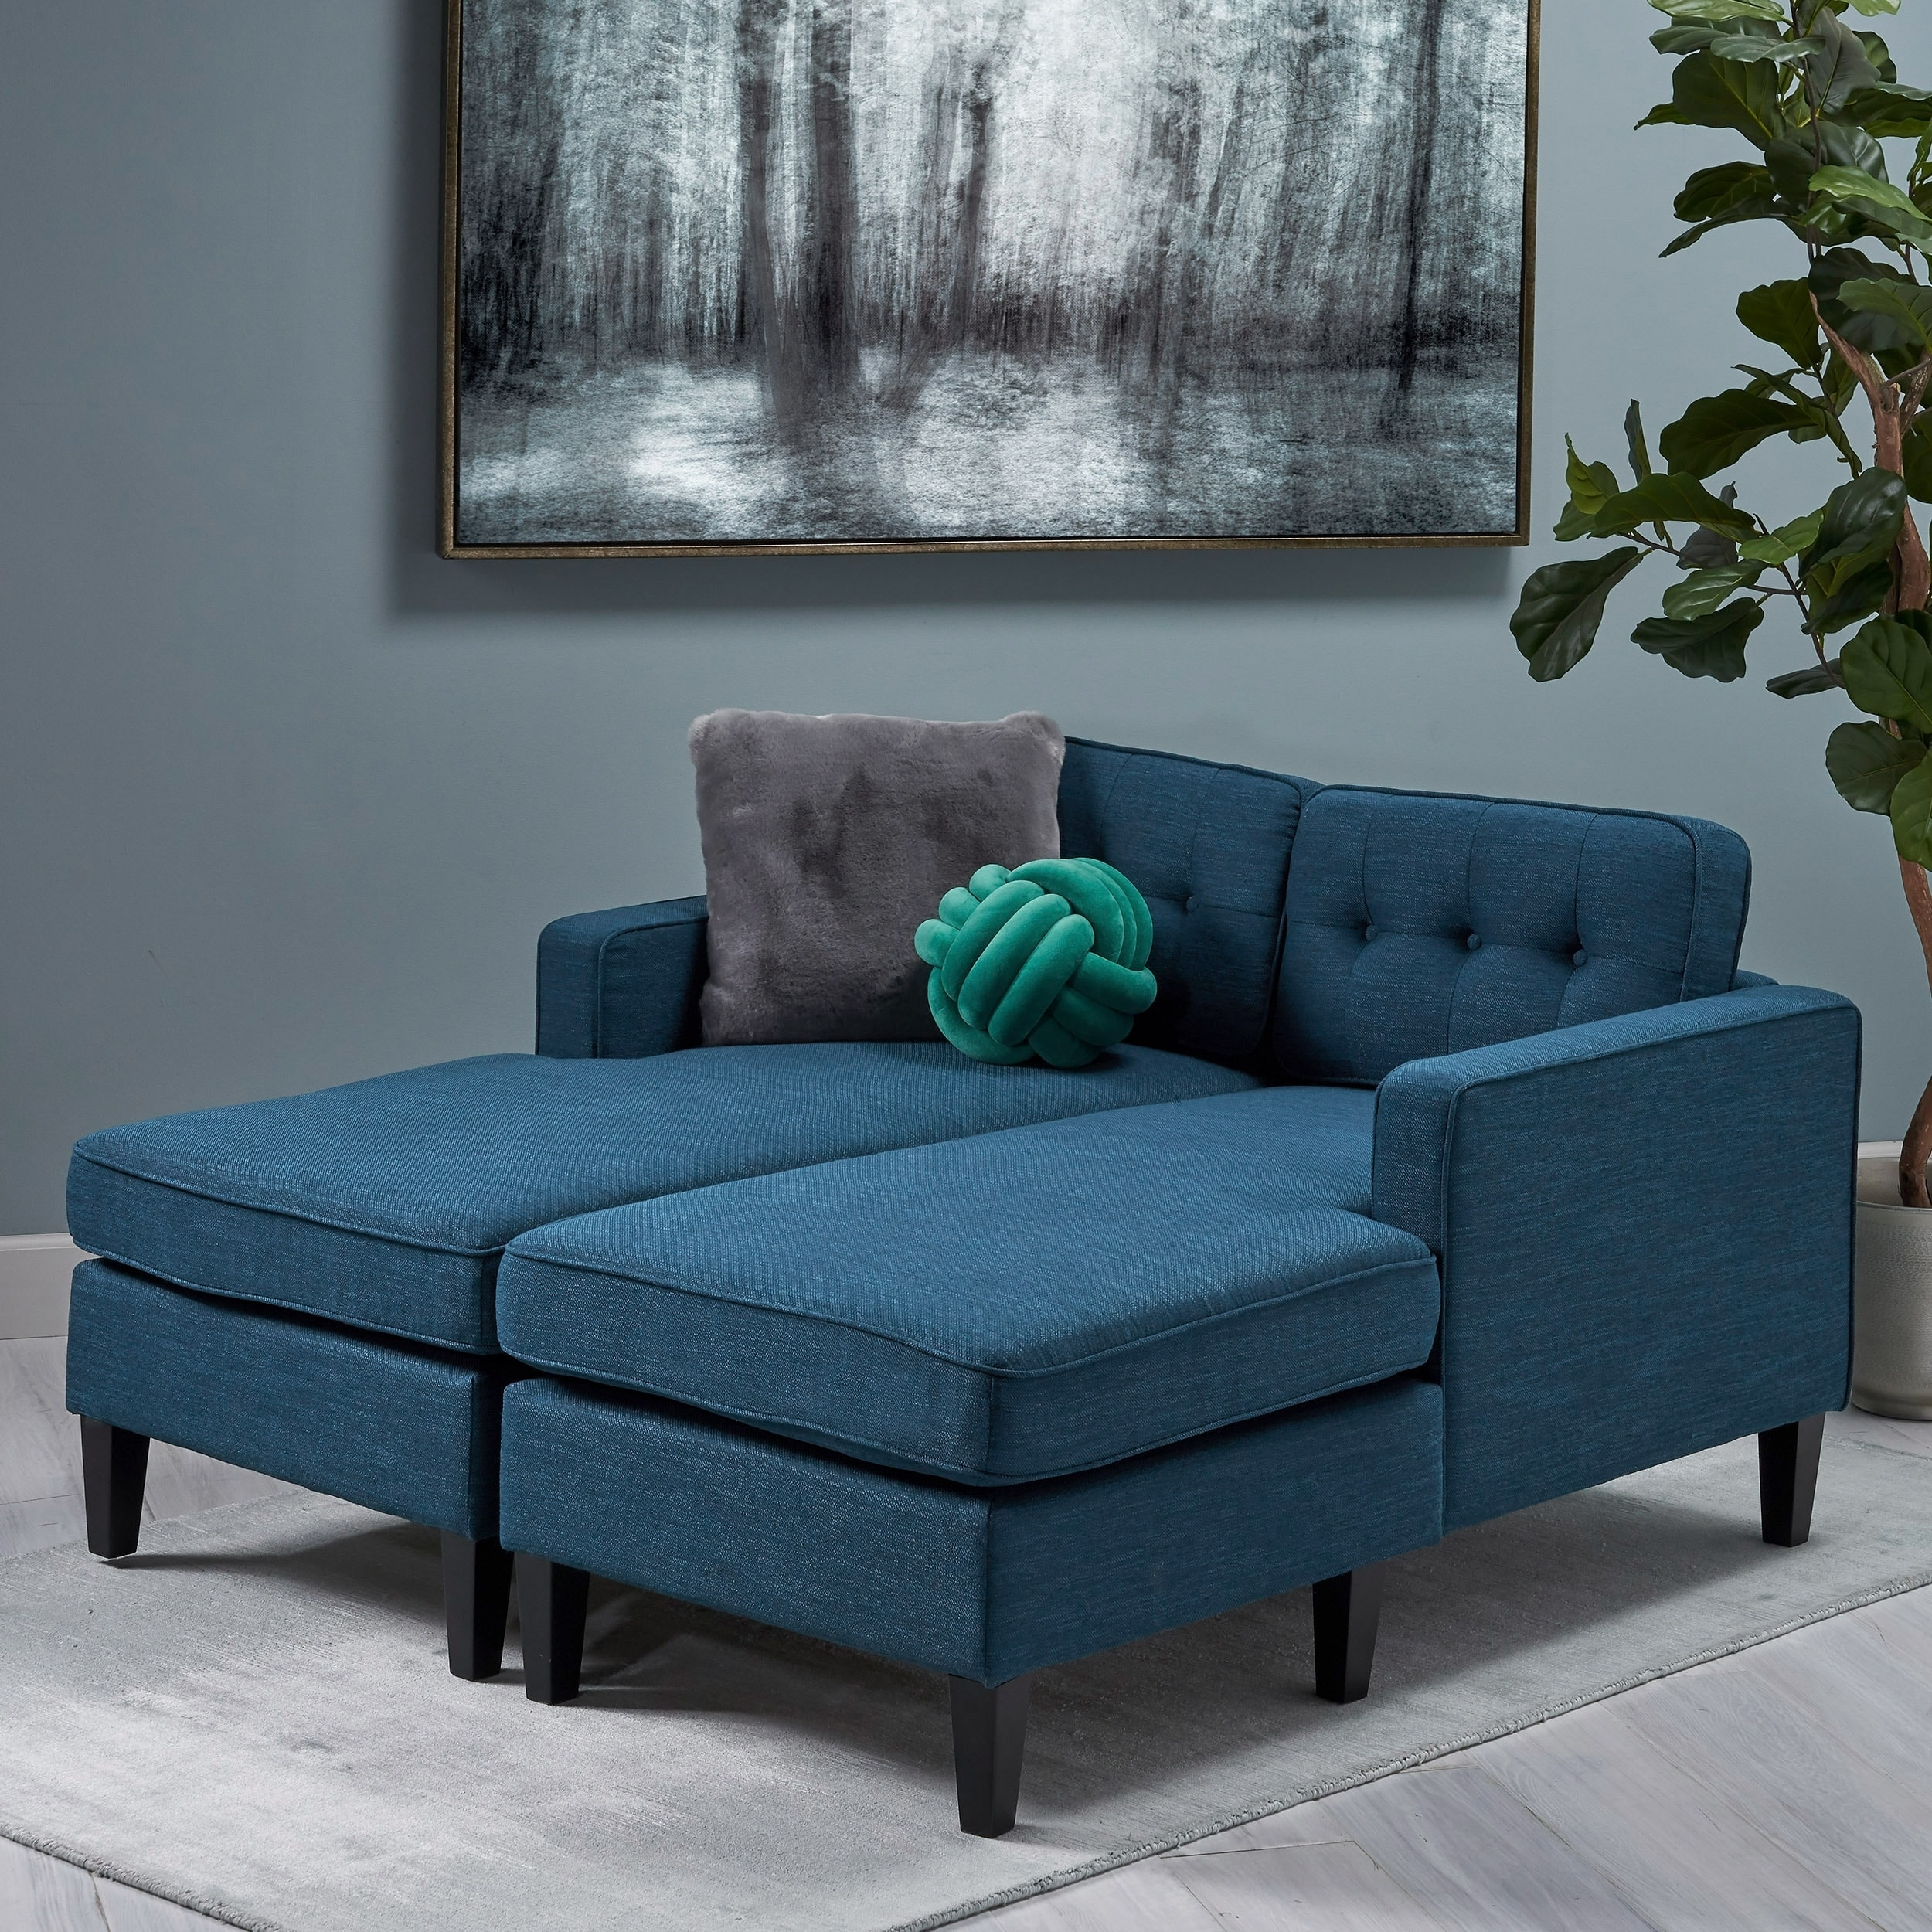 Chaise Lounges Overstock Room ChairsShop Living Online At O8P0nwkX